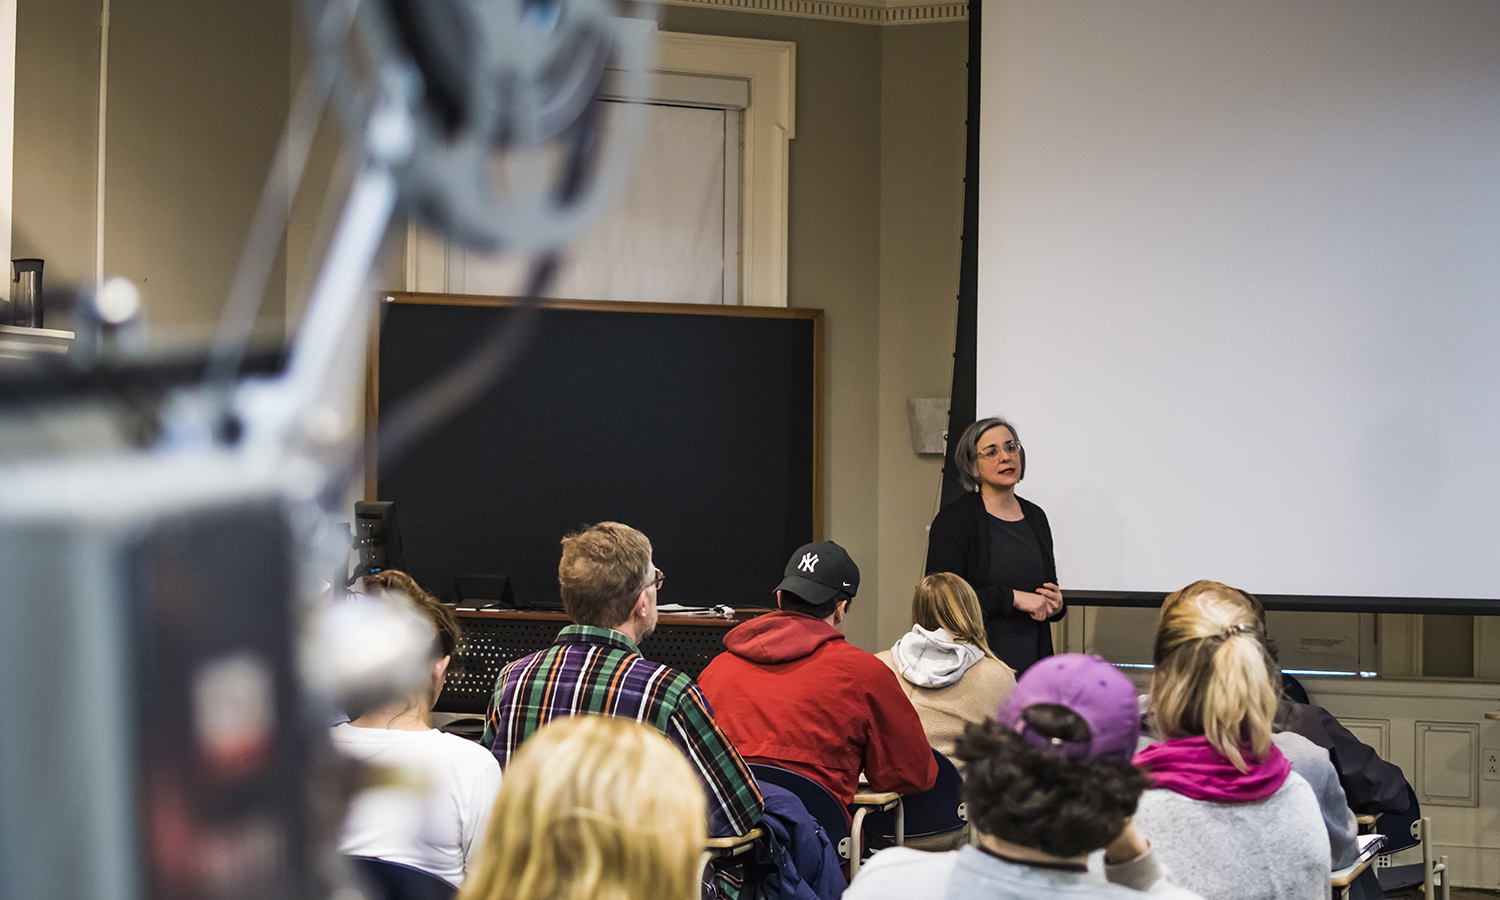 """Rochester based filmmaker Tara Merenda-Nelson explains the the mechanism of projected celluloid cinema and its unique physiological effect on human perception during her talk """"Cinema Biolgy"""" in Houghton House."""